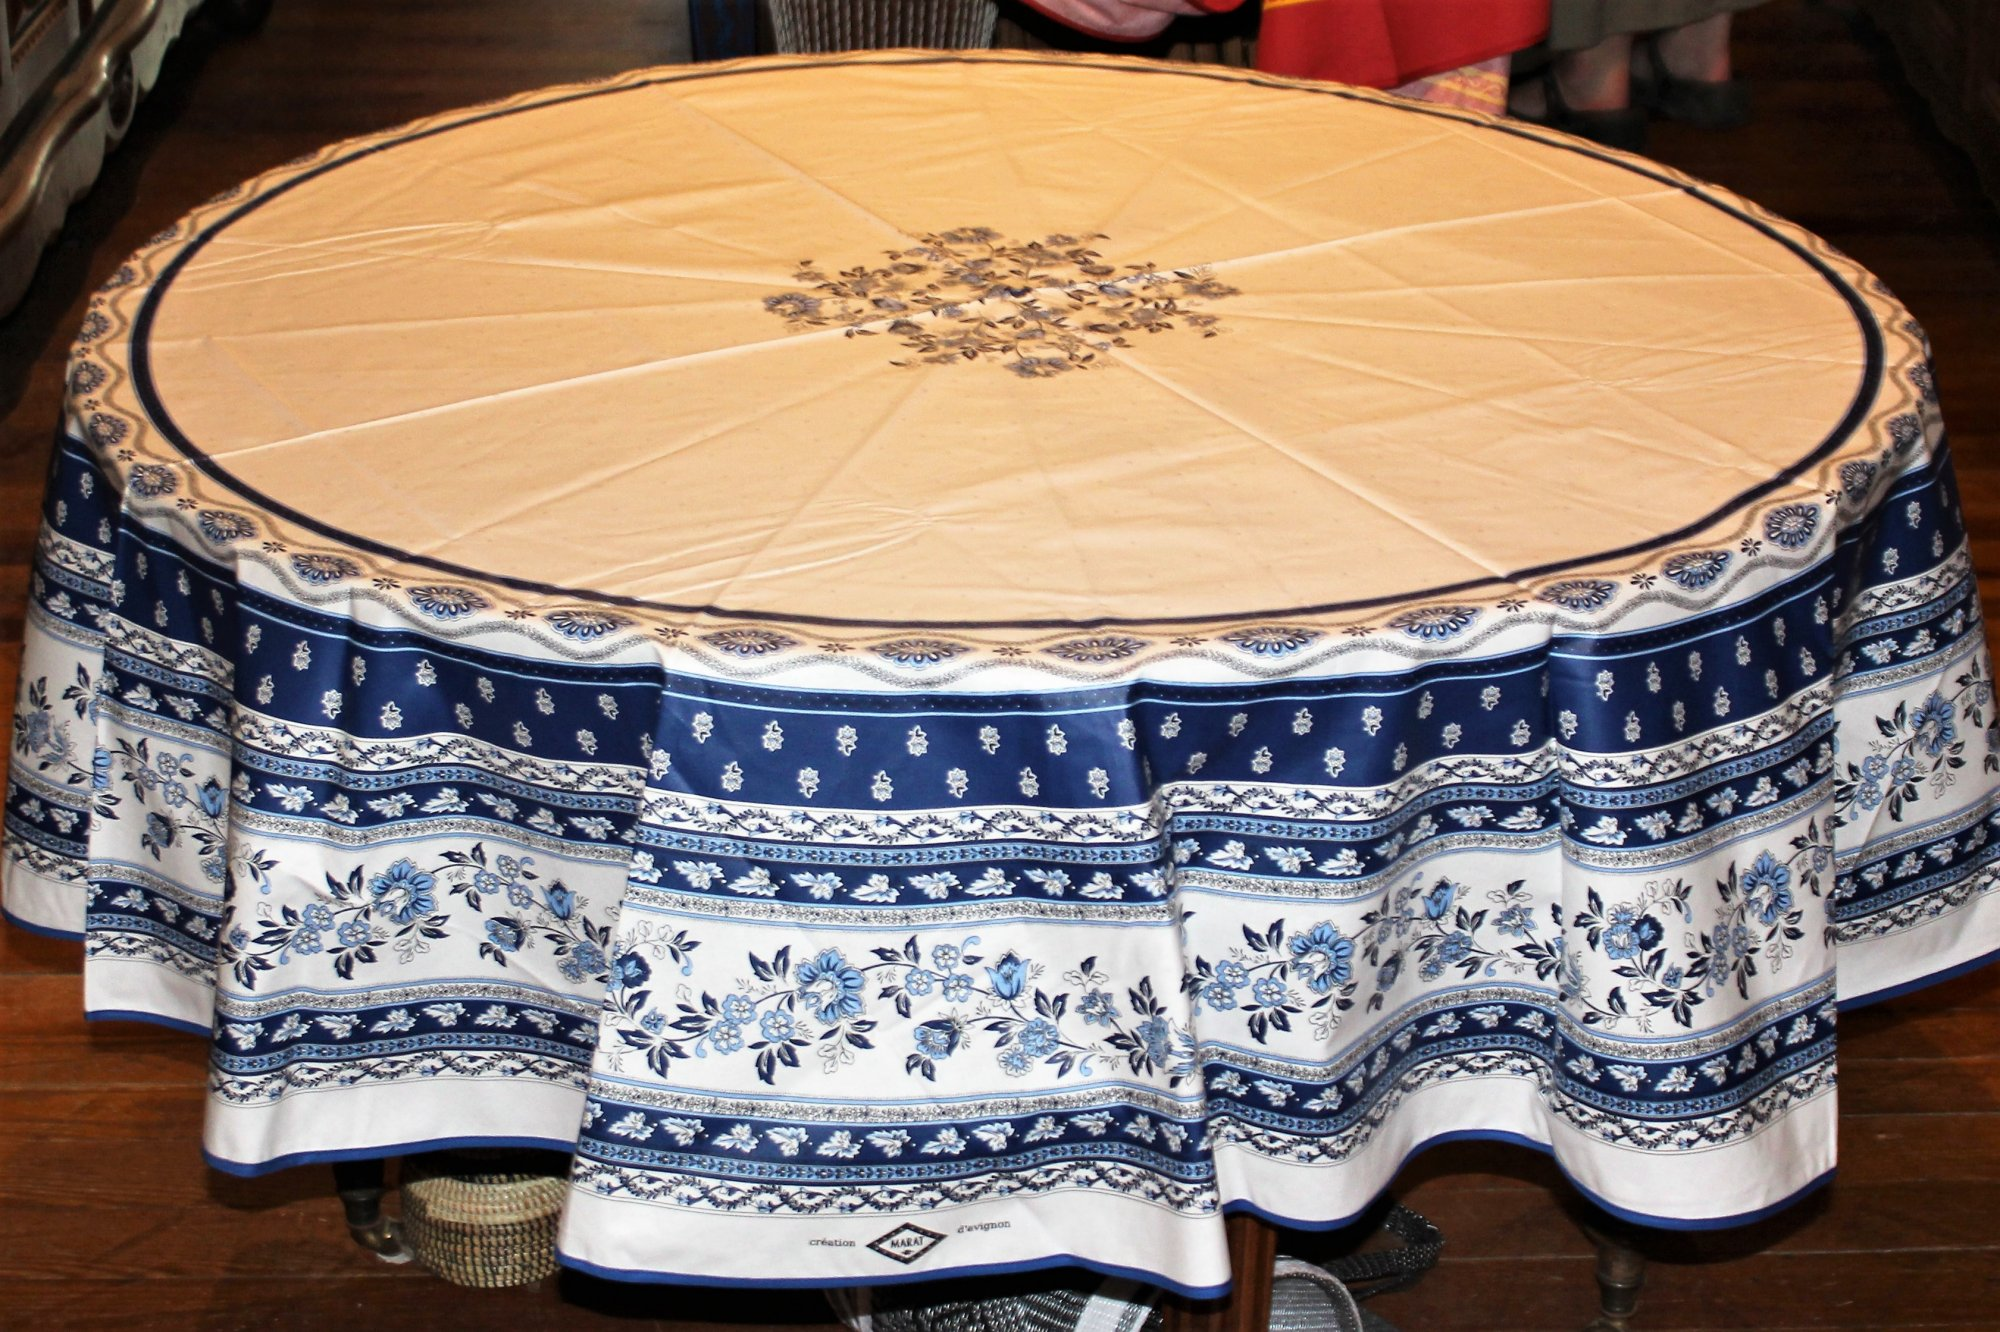 70 French Acrylic-Coated Round Tablecloth Avignon (Blue & White)